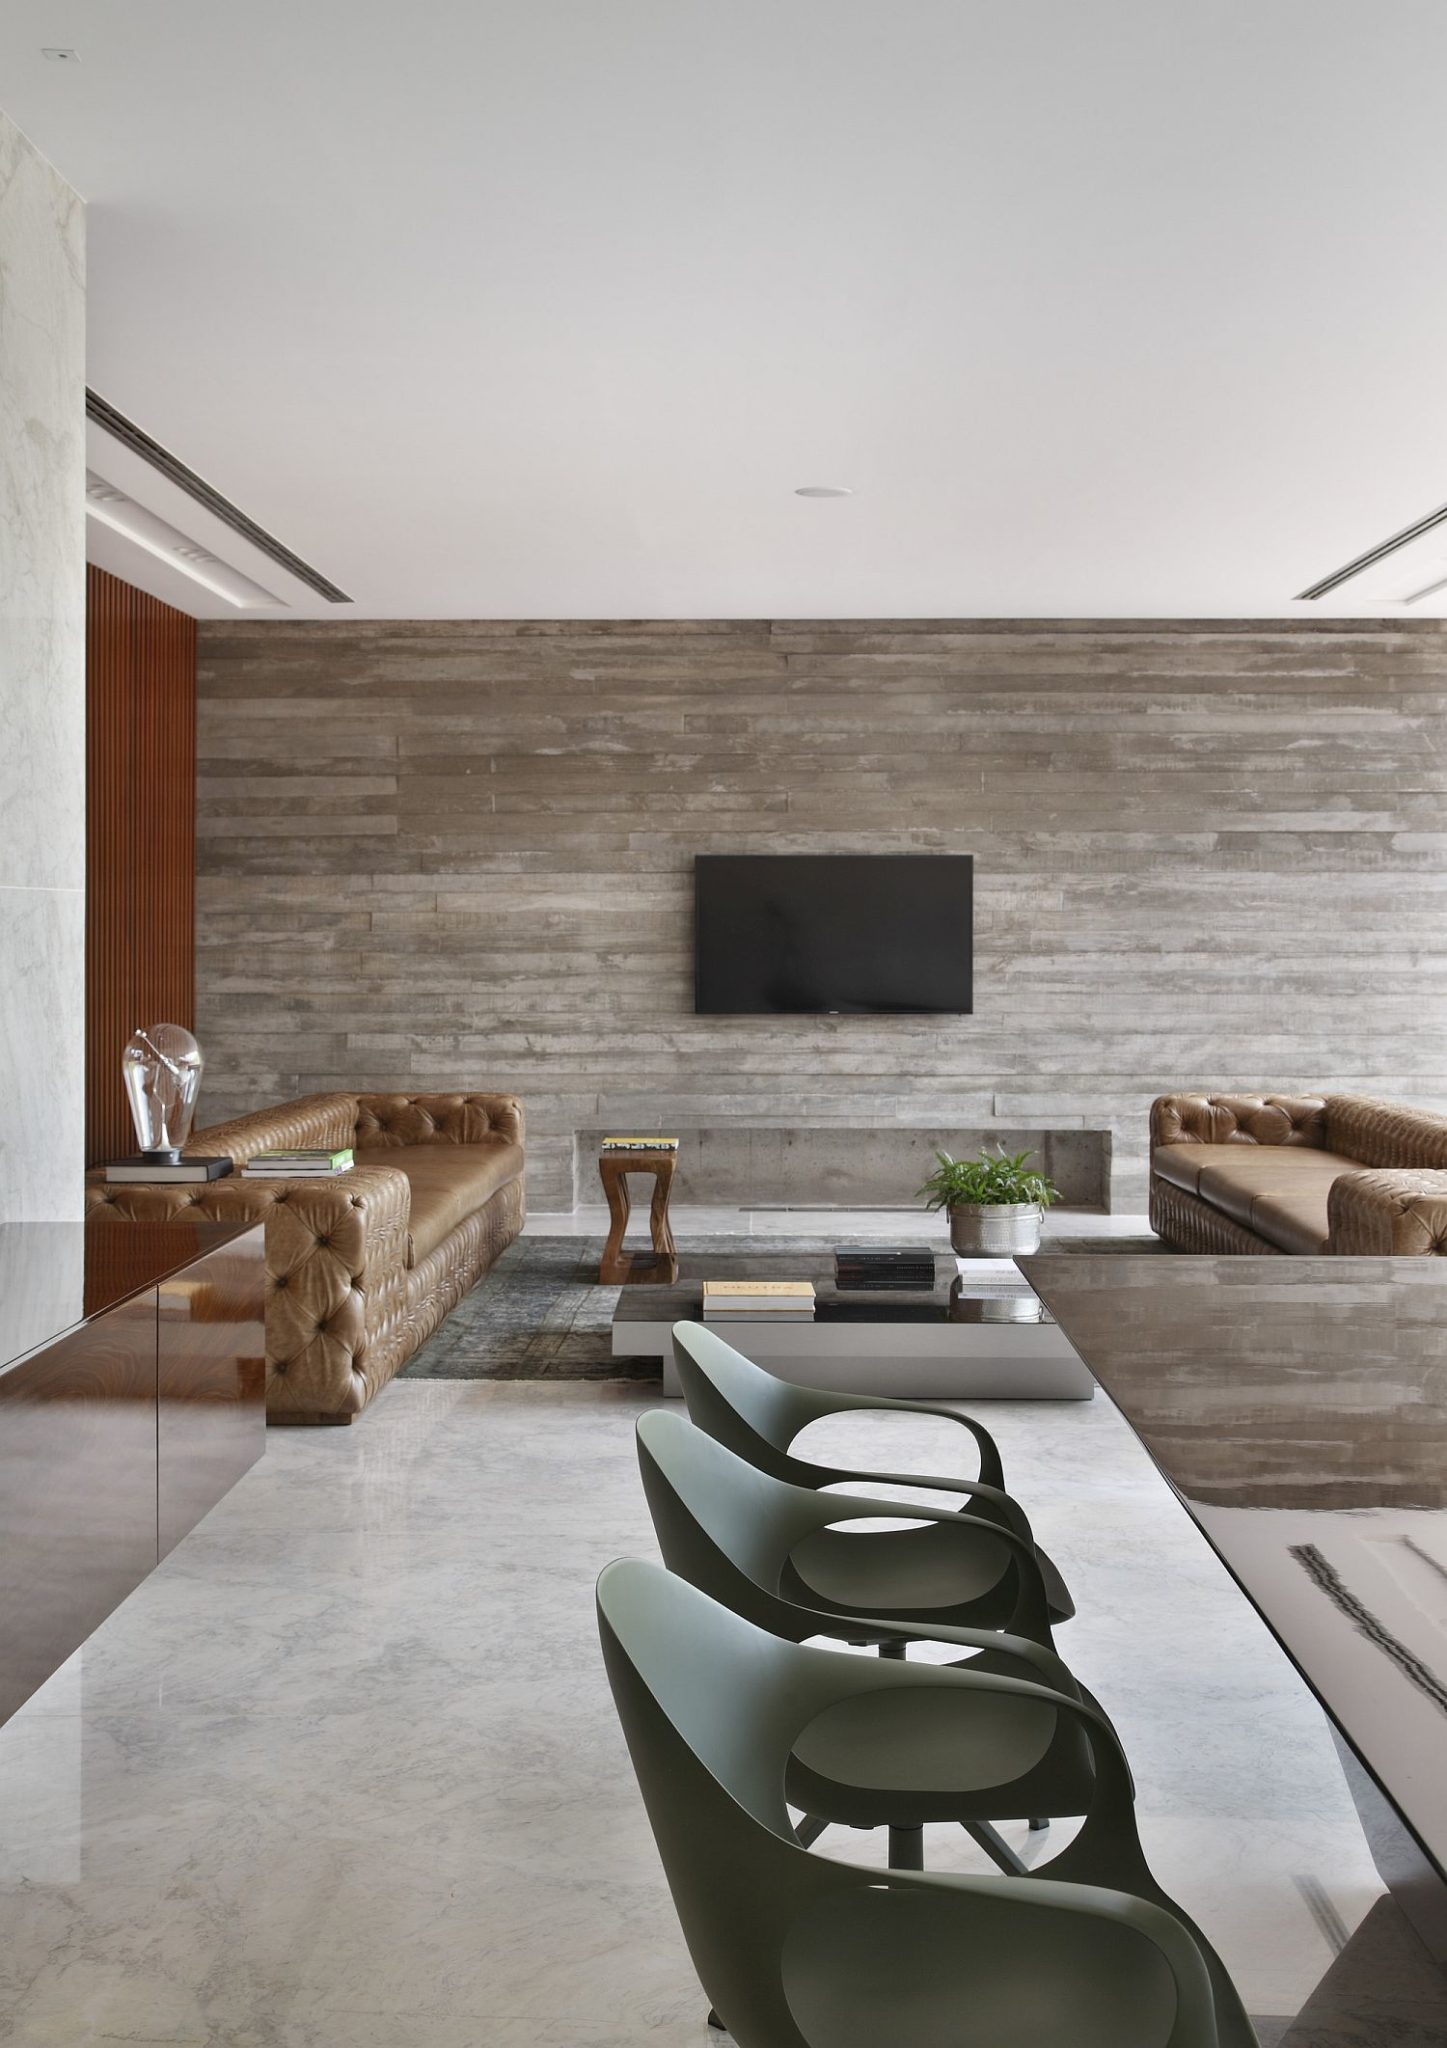 Reclaimed wood and concrete create an elegant living area